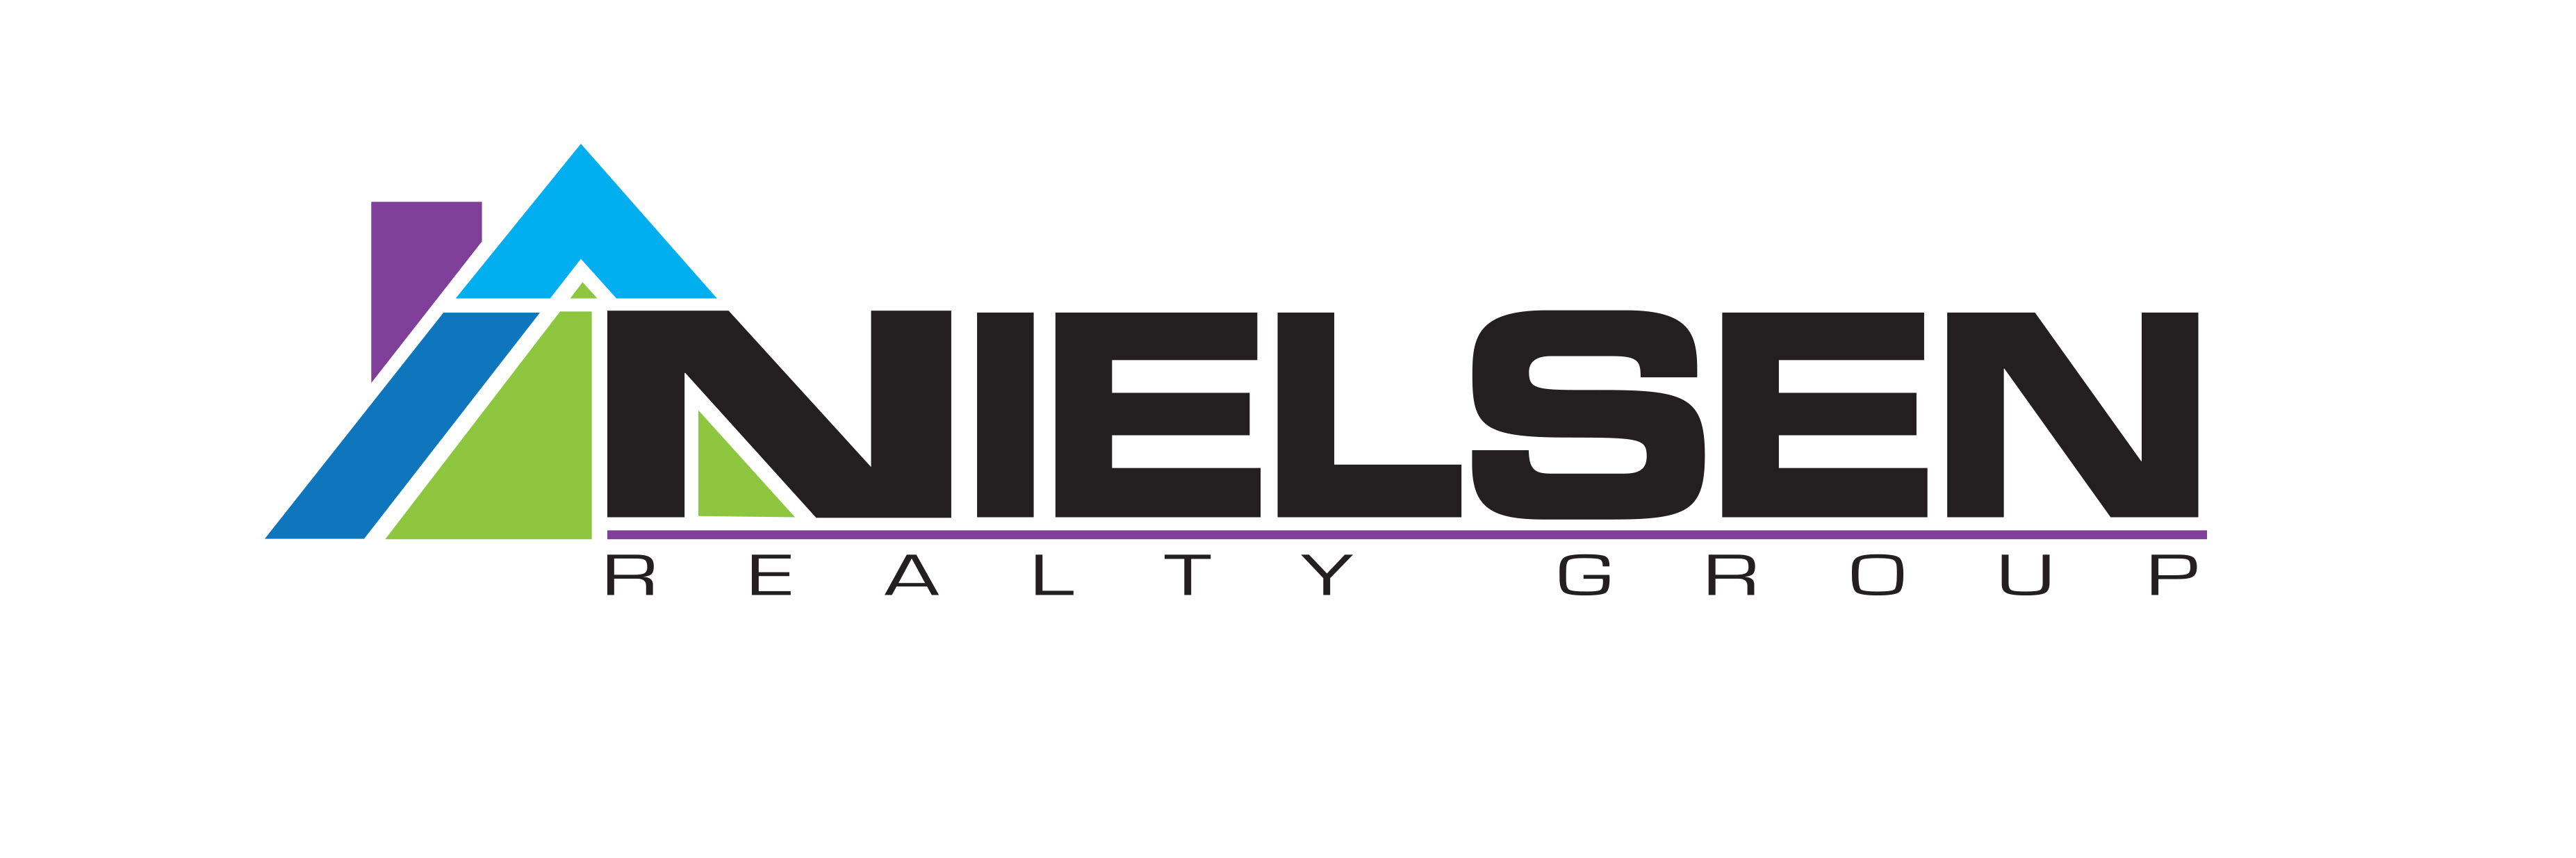 Nielsen Realty Group